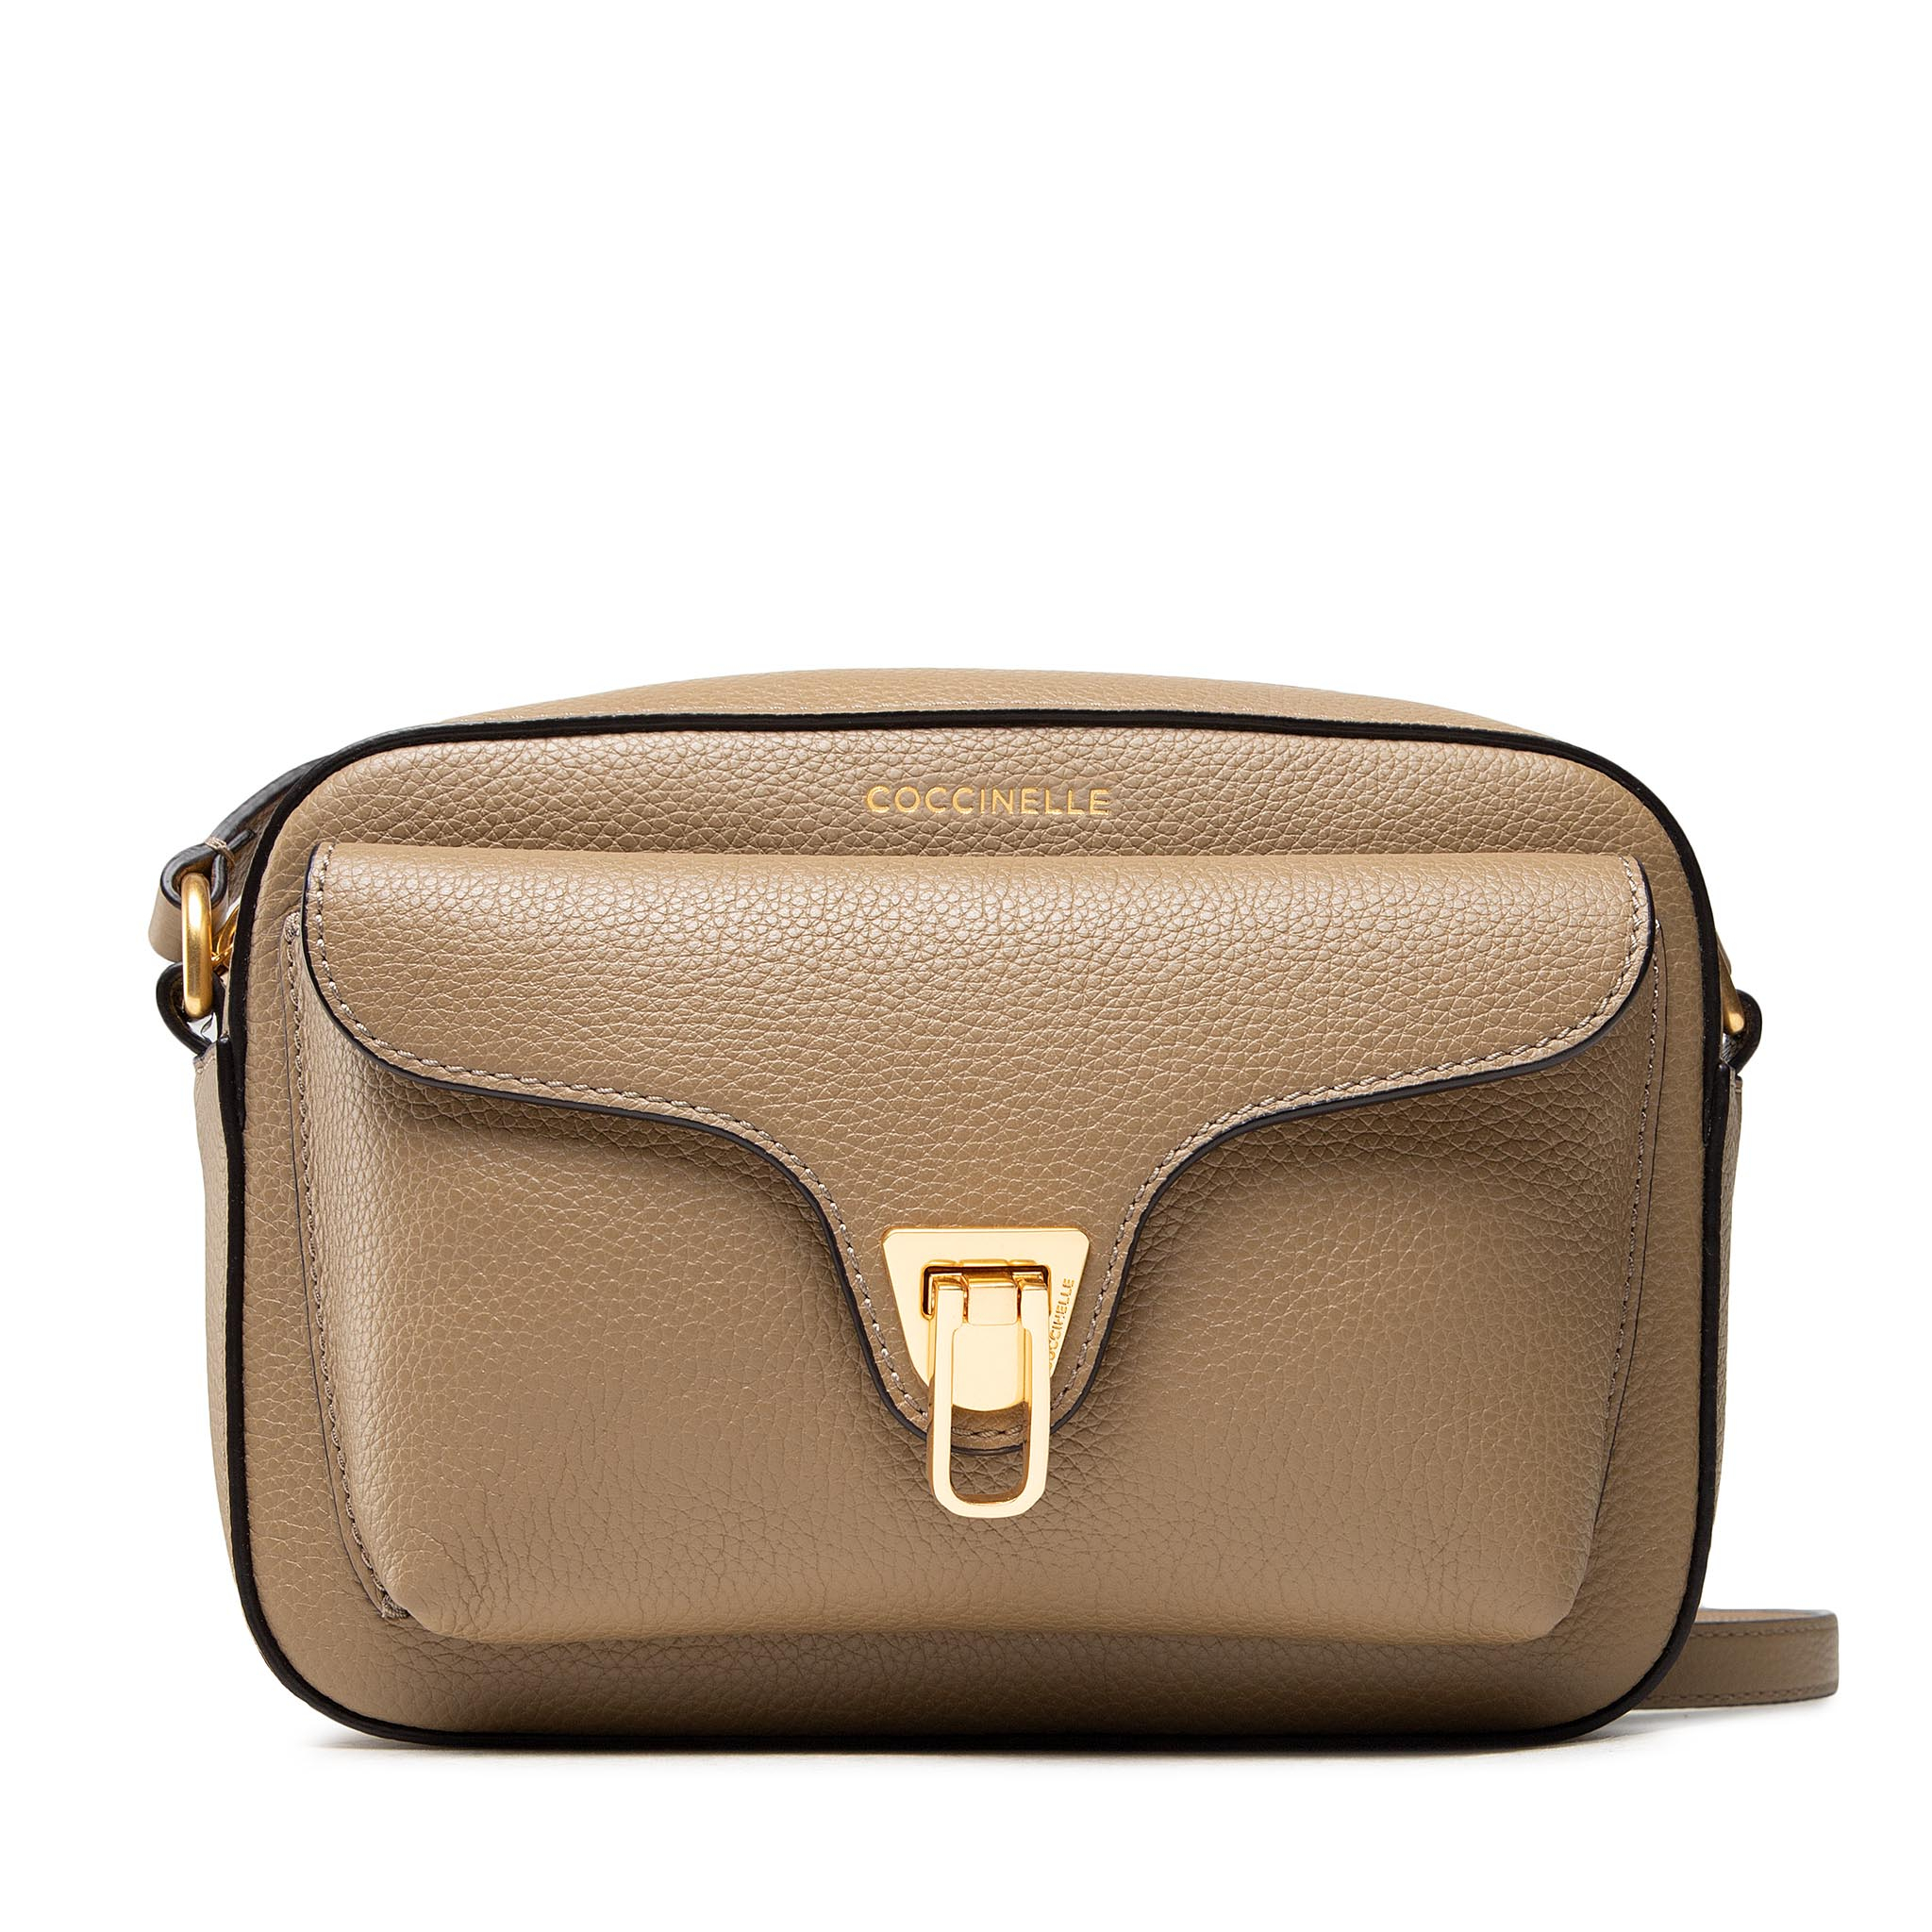 Coccinelle IF6 Beat Soft E1 IF6 15 02 01 Taupe/Dattero